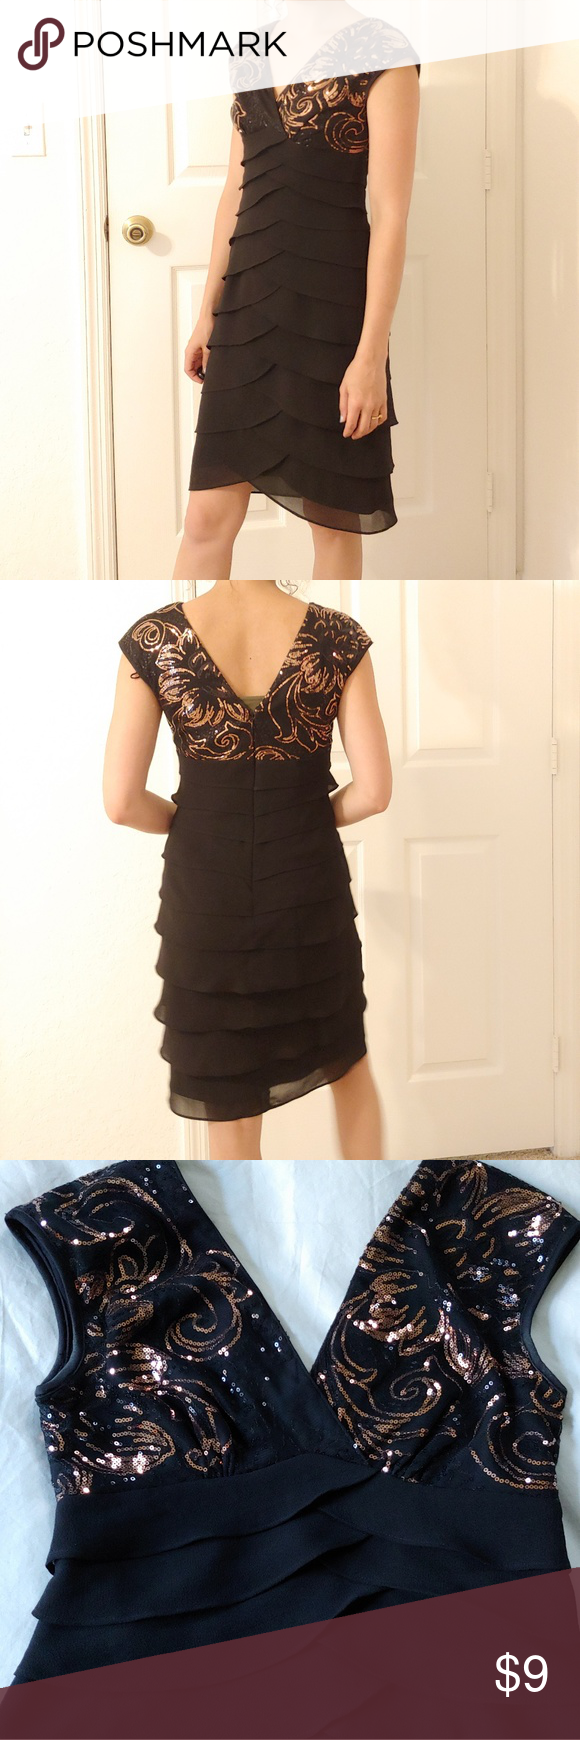 Black Formal Sequin Dress Black Dress Barn Size 4 Party Dress Black And Gold Sequin Bodice With Black Ruffled Bottom I Don Dresses Clothes Design Sequin Dress [ 1740 x 580 Pixel ]